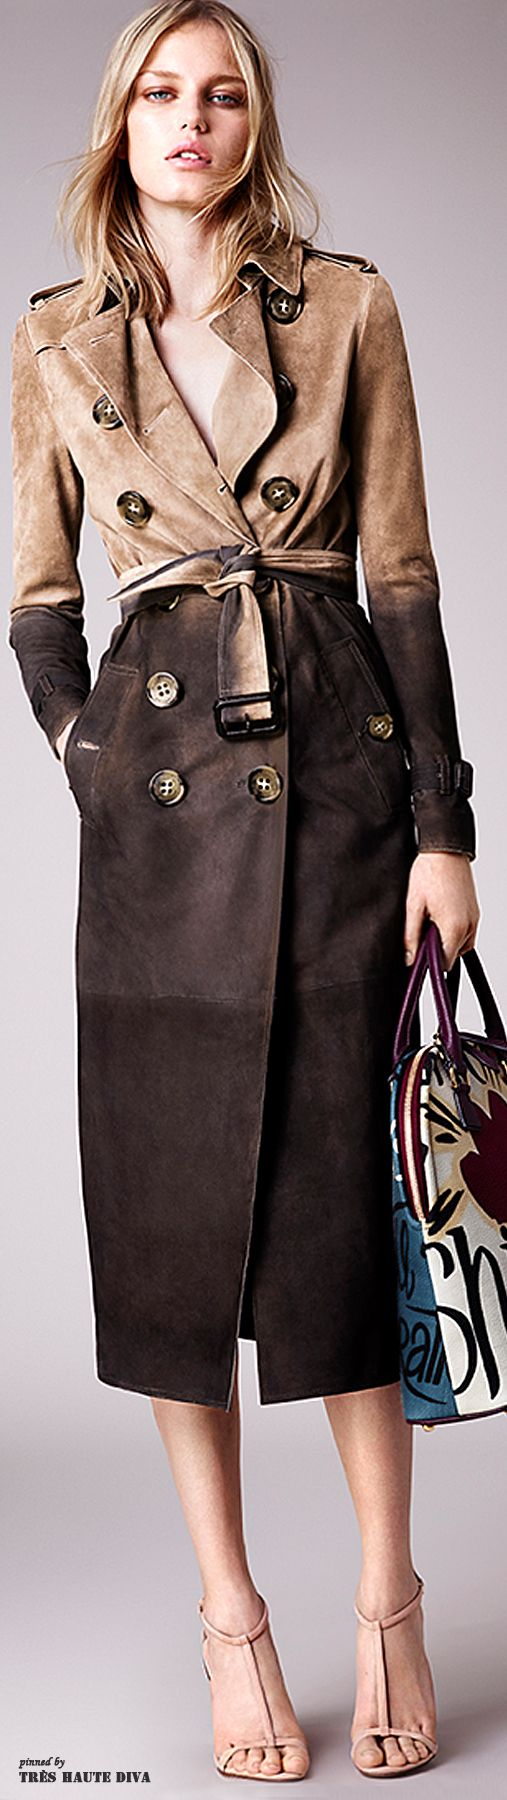 Burberry Prorsum Resort 2015